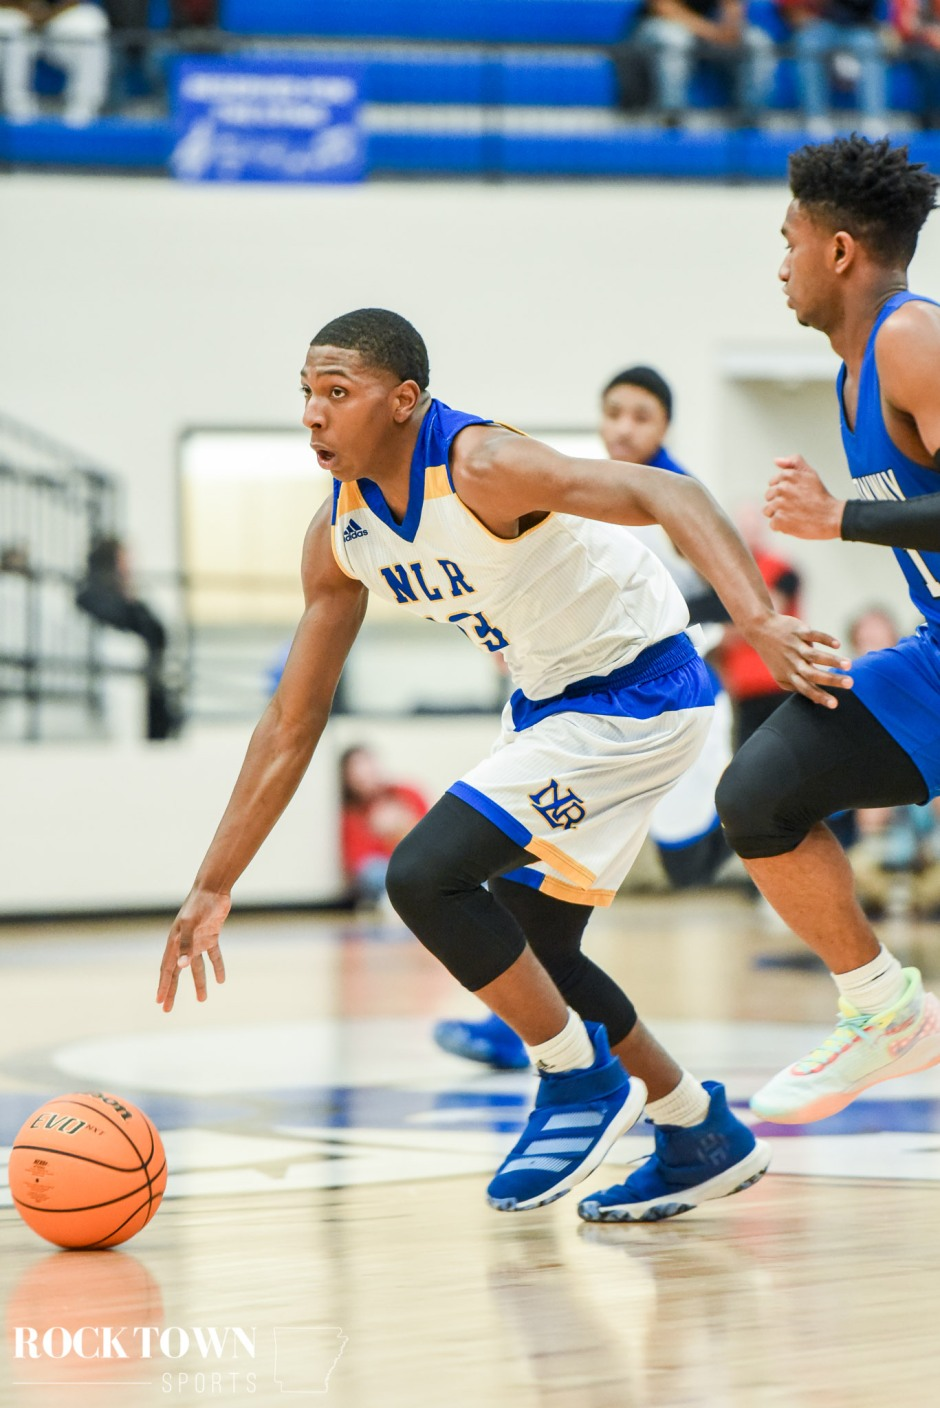 NLR_conway_bball_2020(i)-35